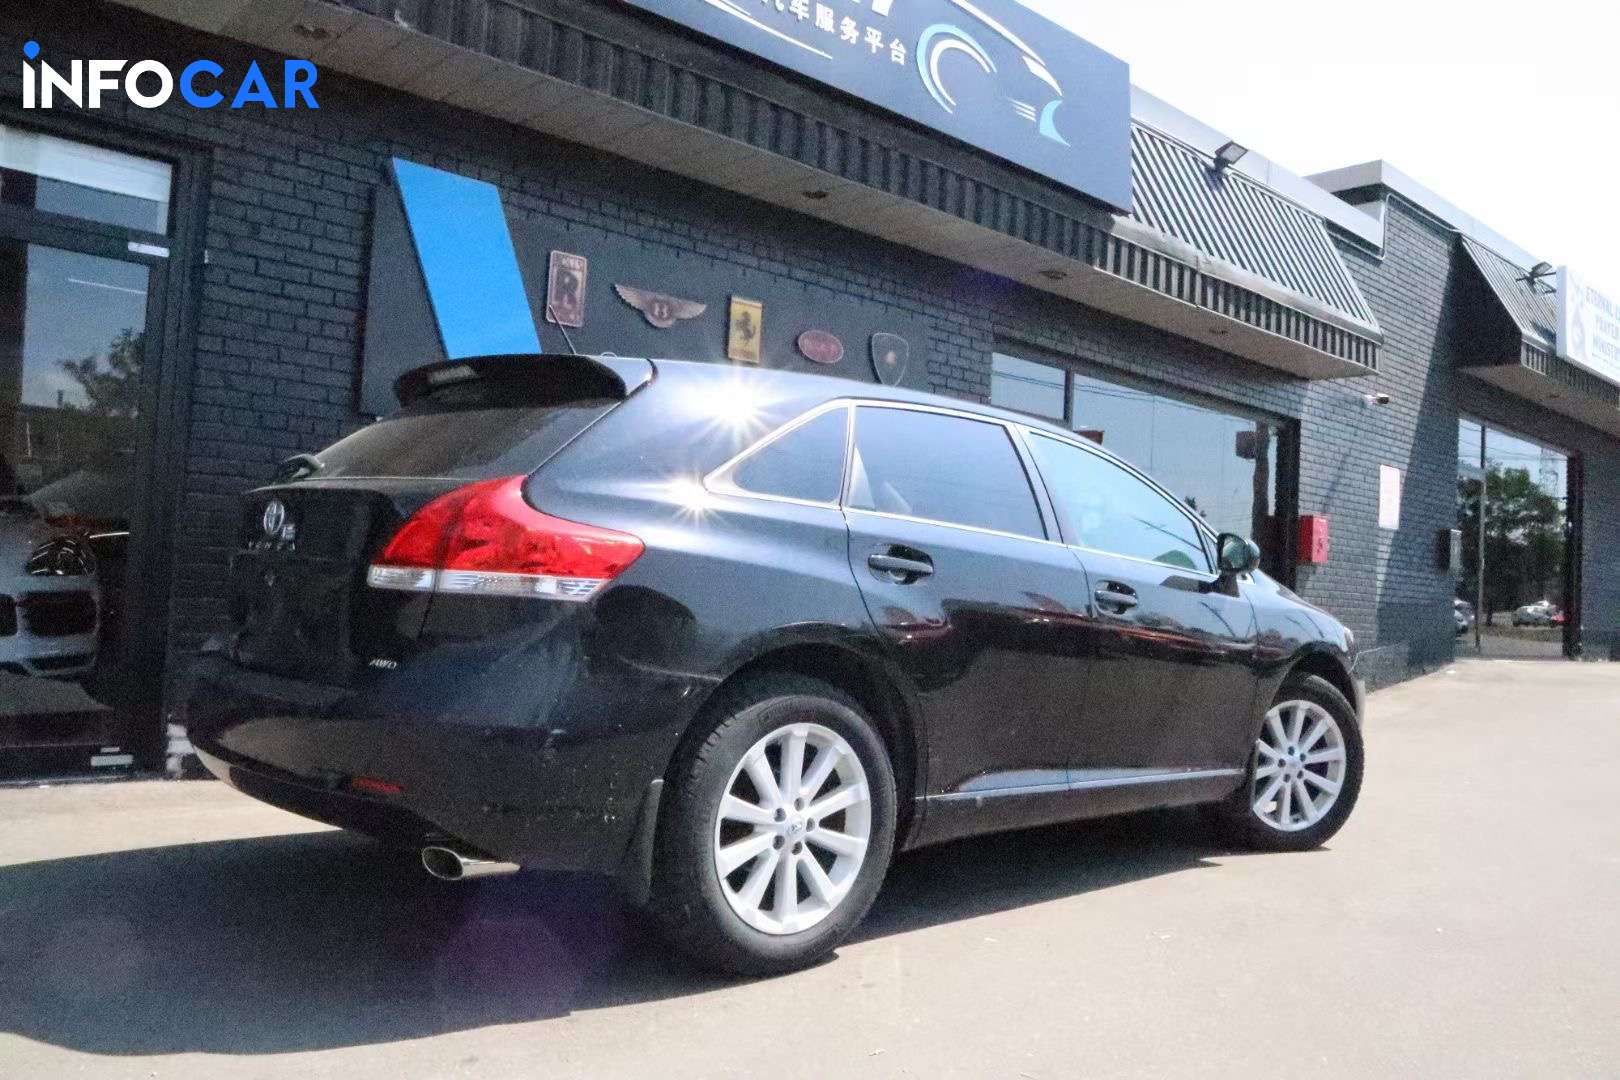 2012 Toyota Venza null - INFOCAR - Toronto's Most Comprehensive New and Used Auto Trading Platform